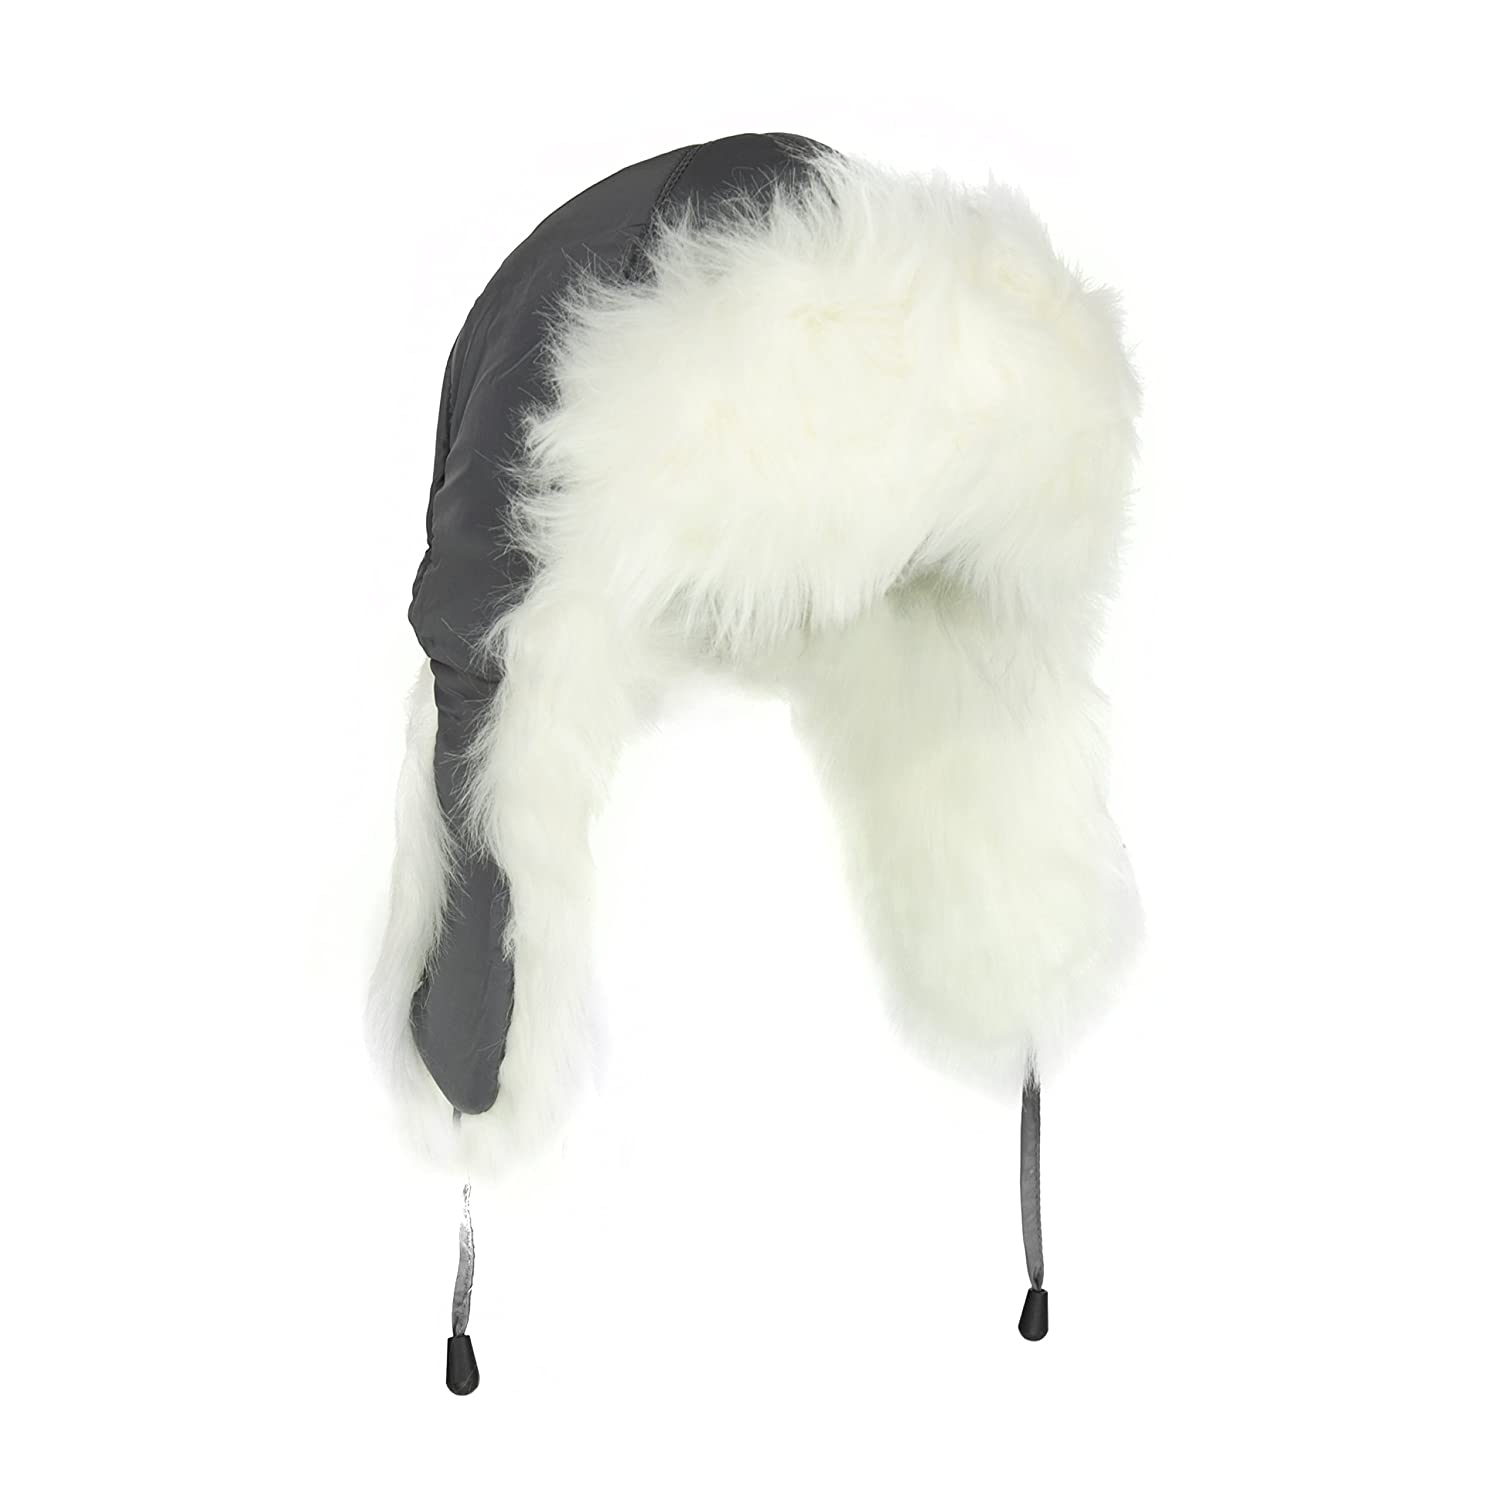 Adorable White Fur Trooper Hat, Warm Grey Peruvian Cap for Women w/ Tie TJED110116